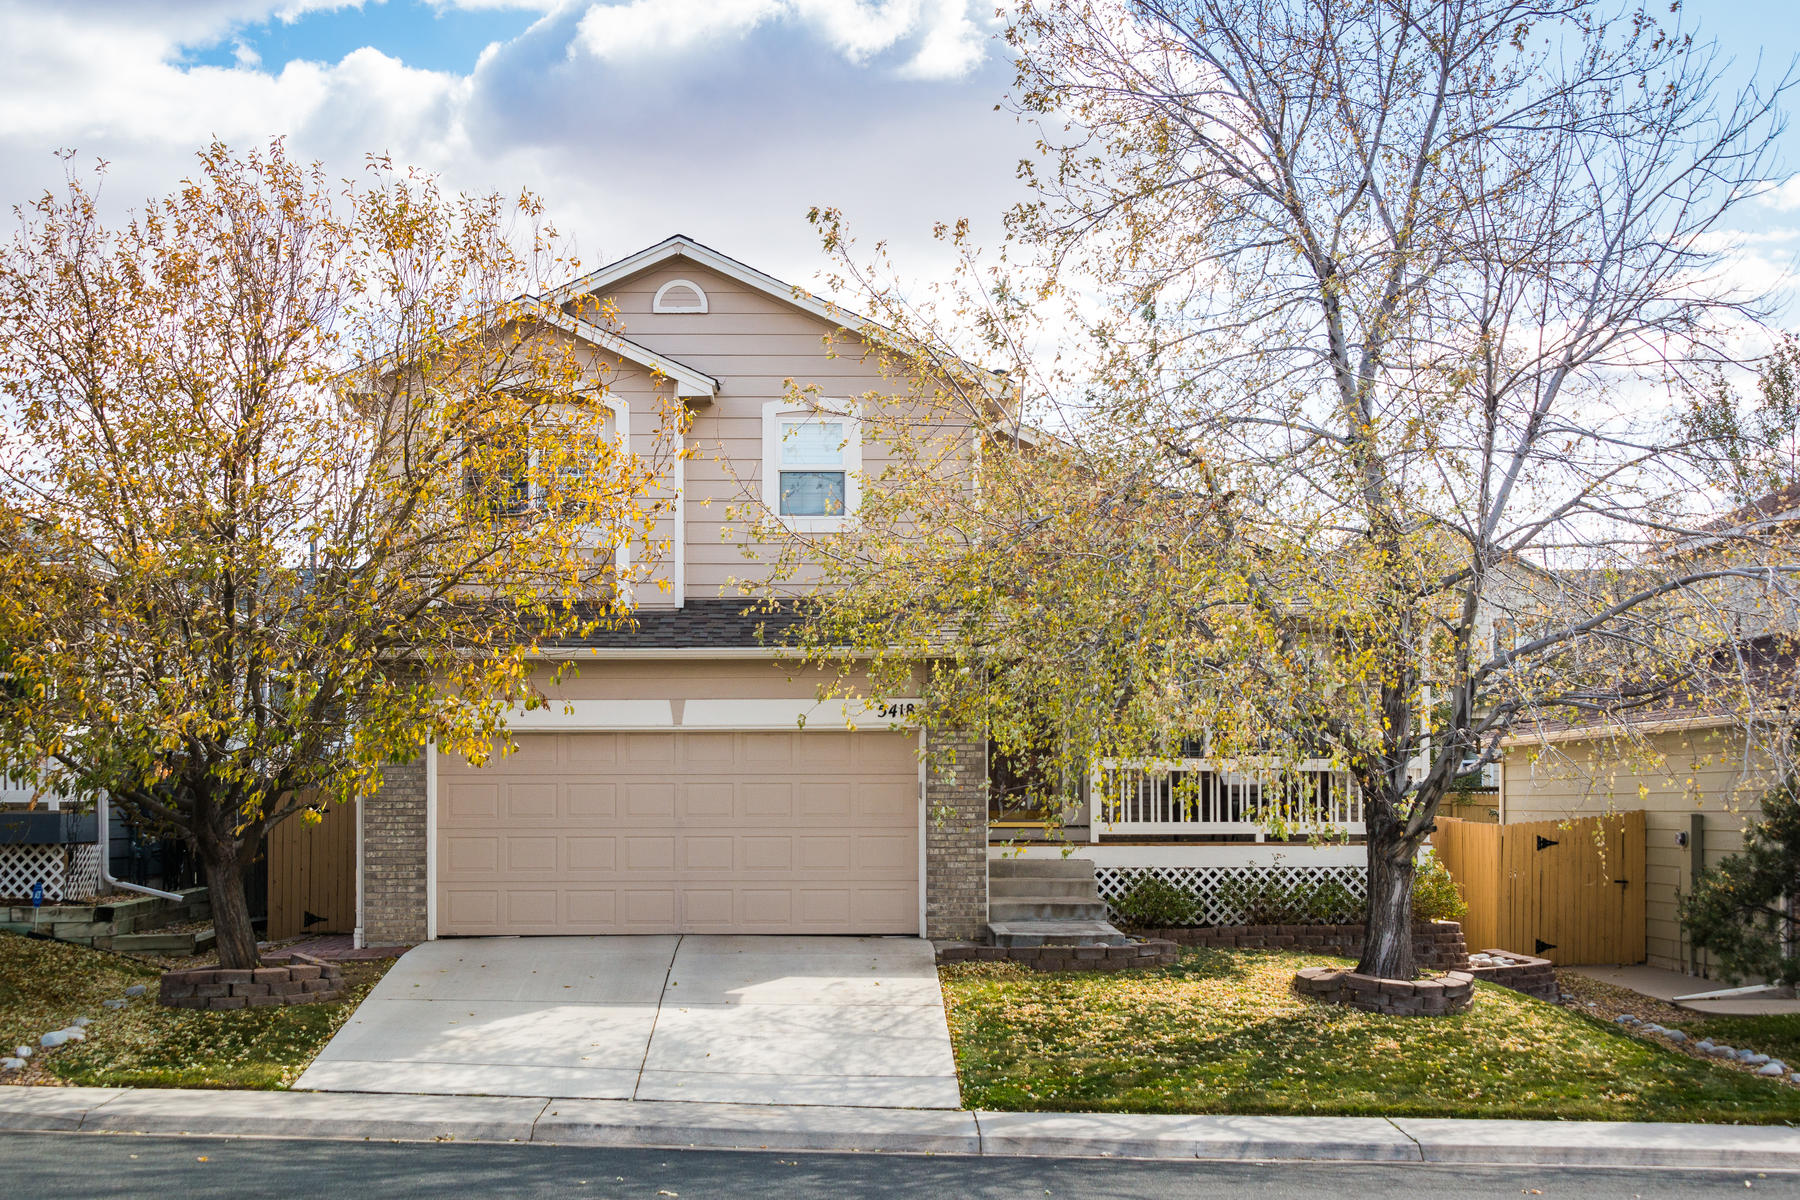 Single Family Homes for Sale at Beautiful 2-Story Home in The Hills at Saddle Rock Ridge 5418 S Valdai Street Aurora, Colorado 80015 United States